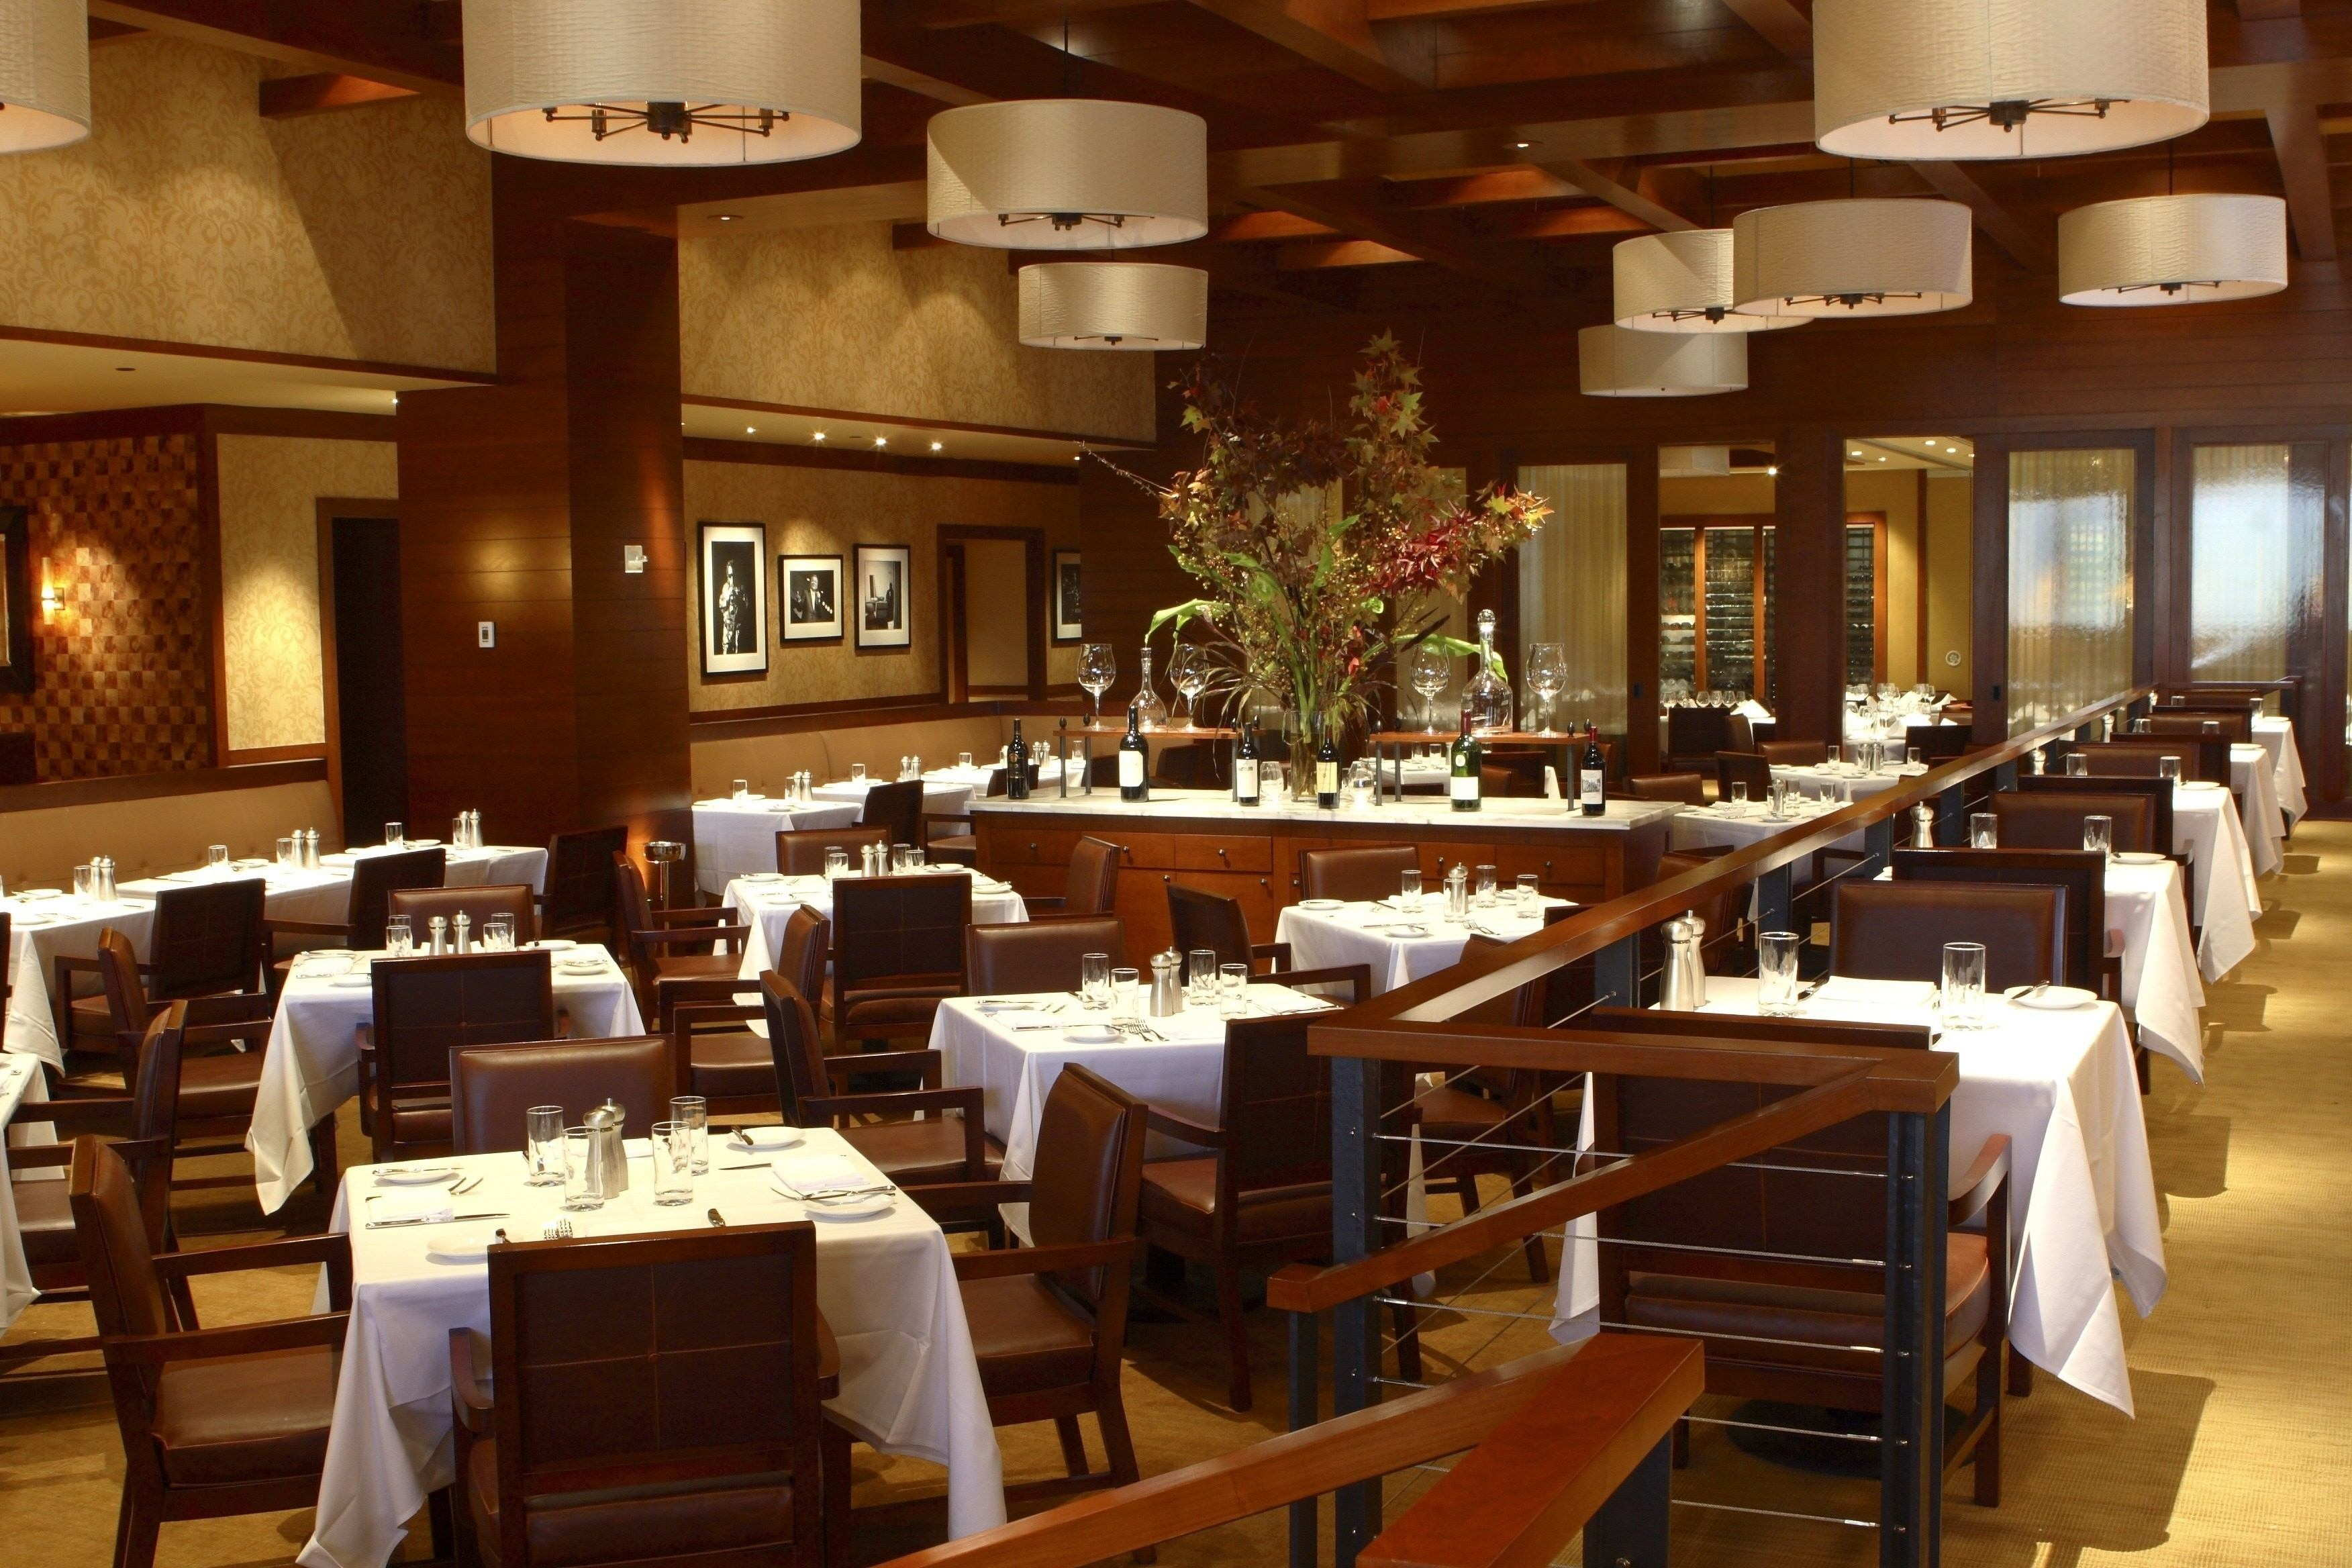 Per Se NYC restaurants TOP 10 Best-Looking Restaurants in New York main 20room 202 20 1MB 2327D0